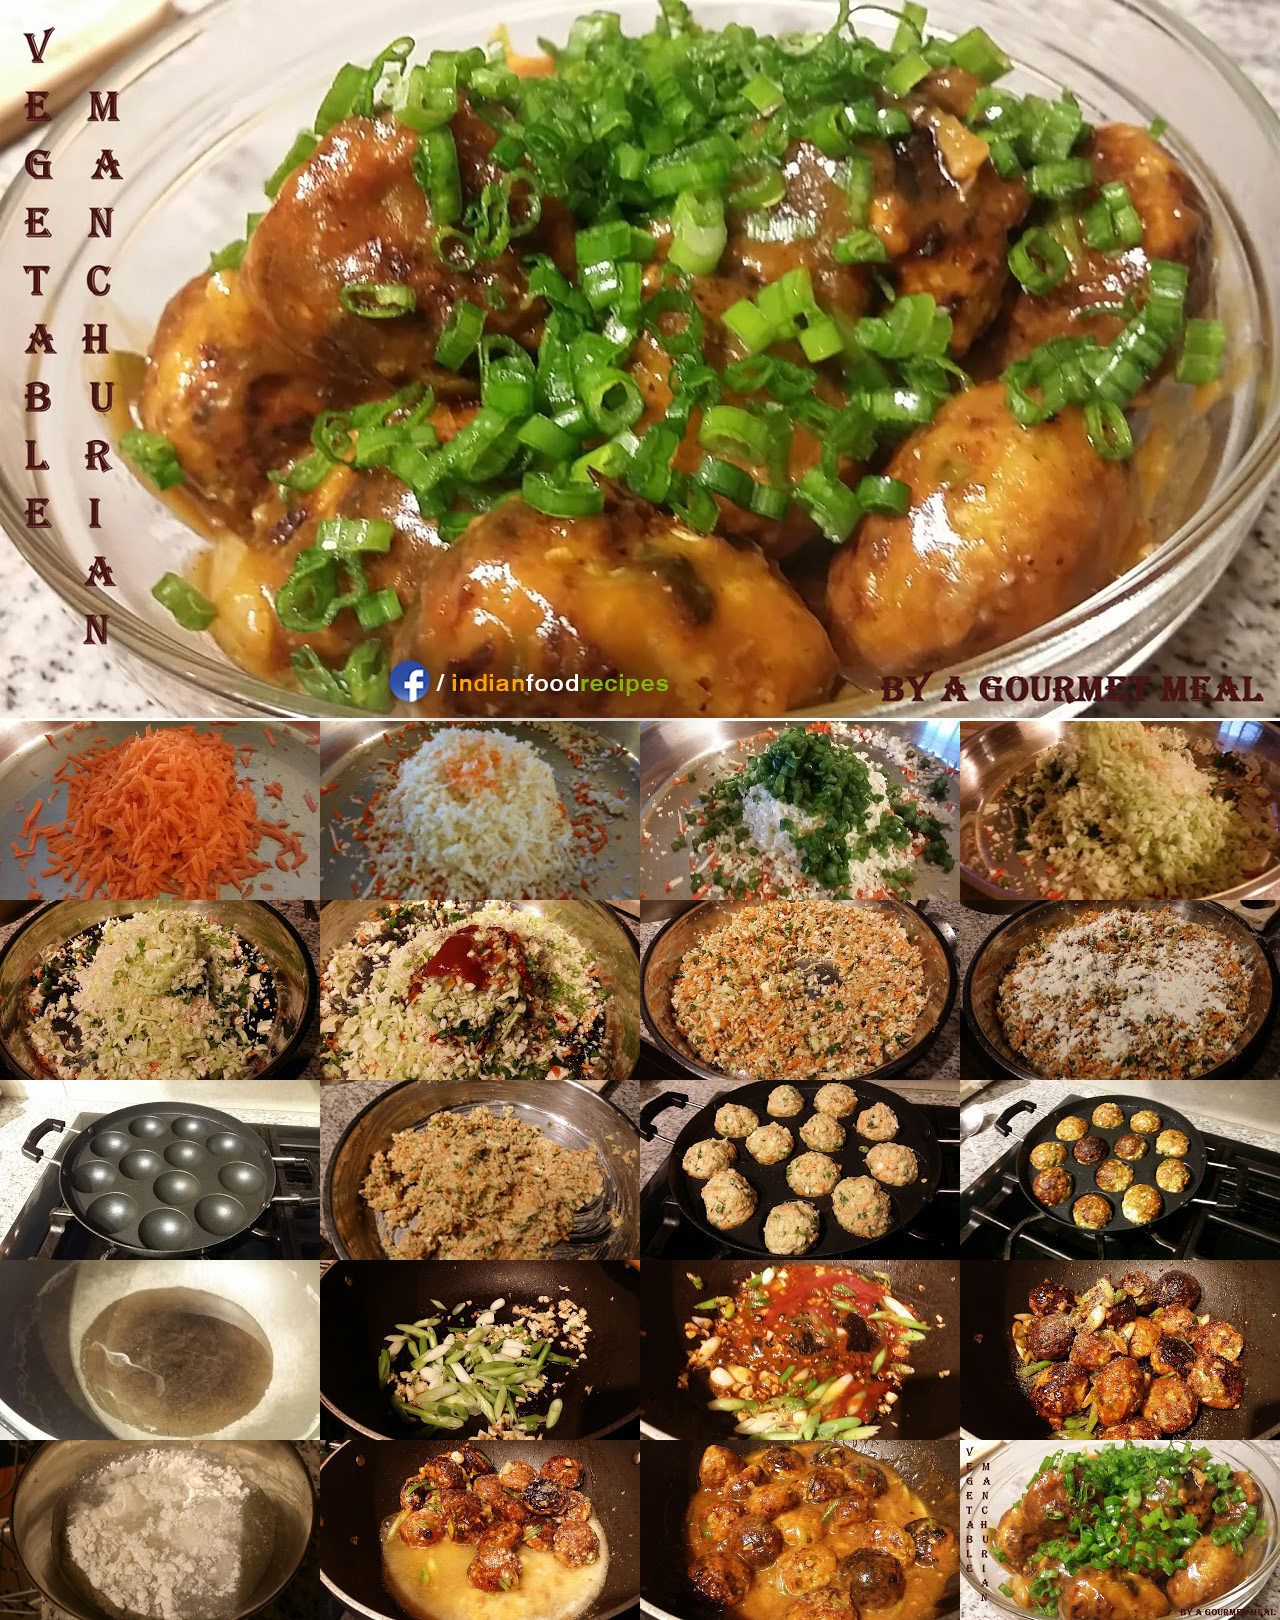 Vegetable Manchurian recipe step by step